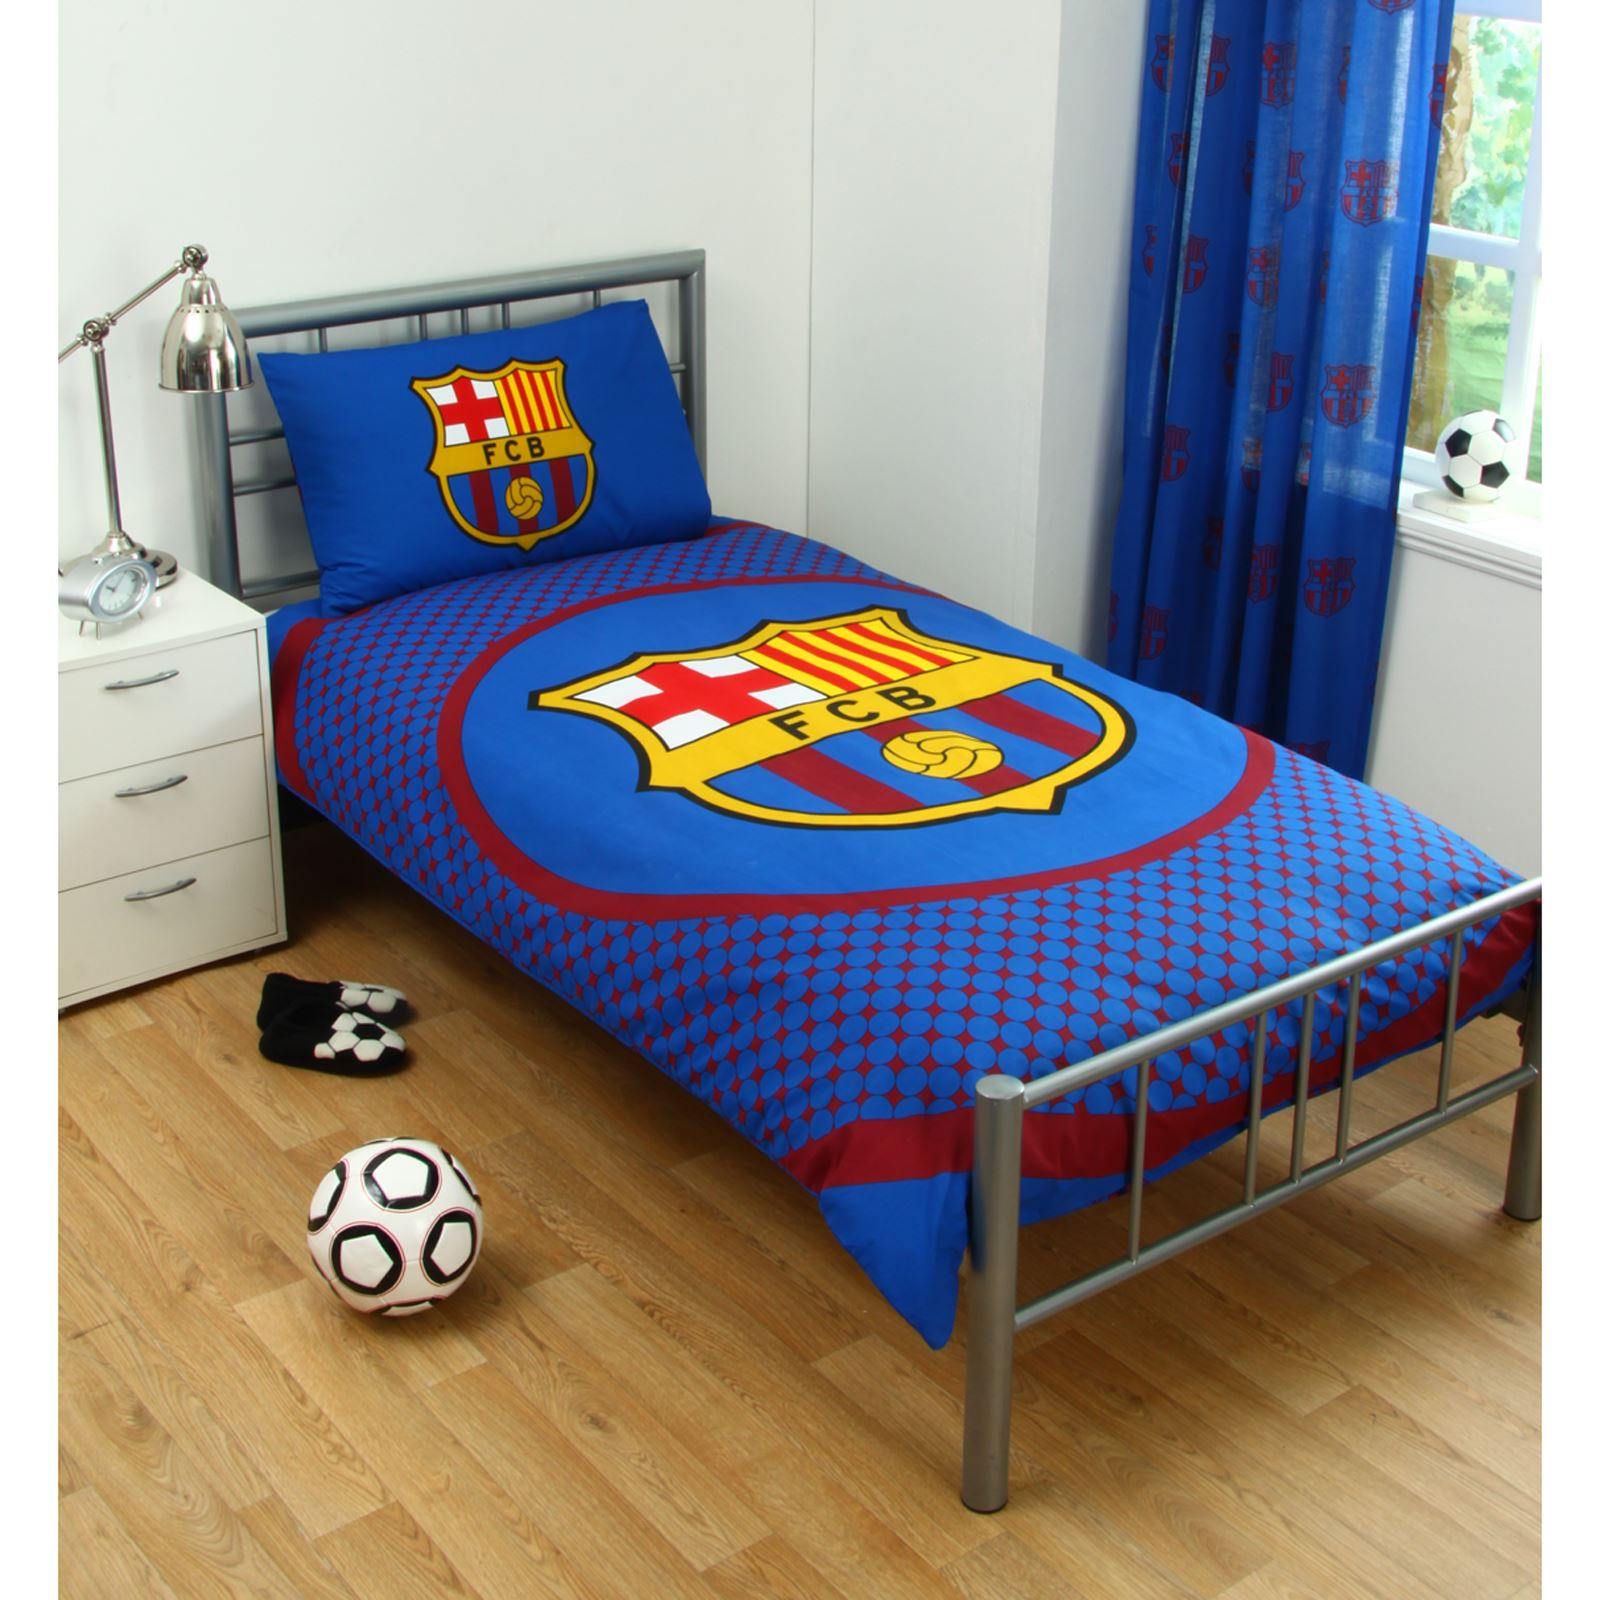 barcelone parure de lit et chambre coucher accessoires football gar on neuf ebay. Black Bedroom Furniture Sets. Home Design Ideas